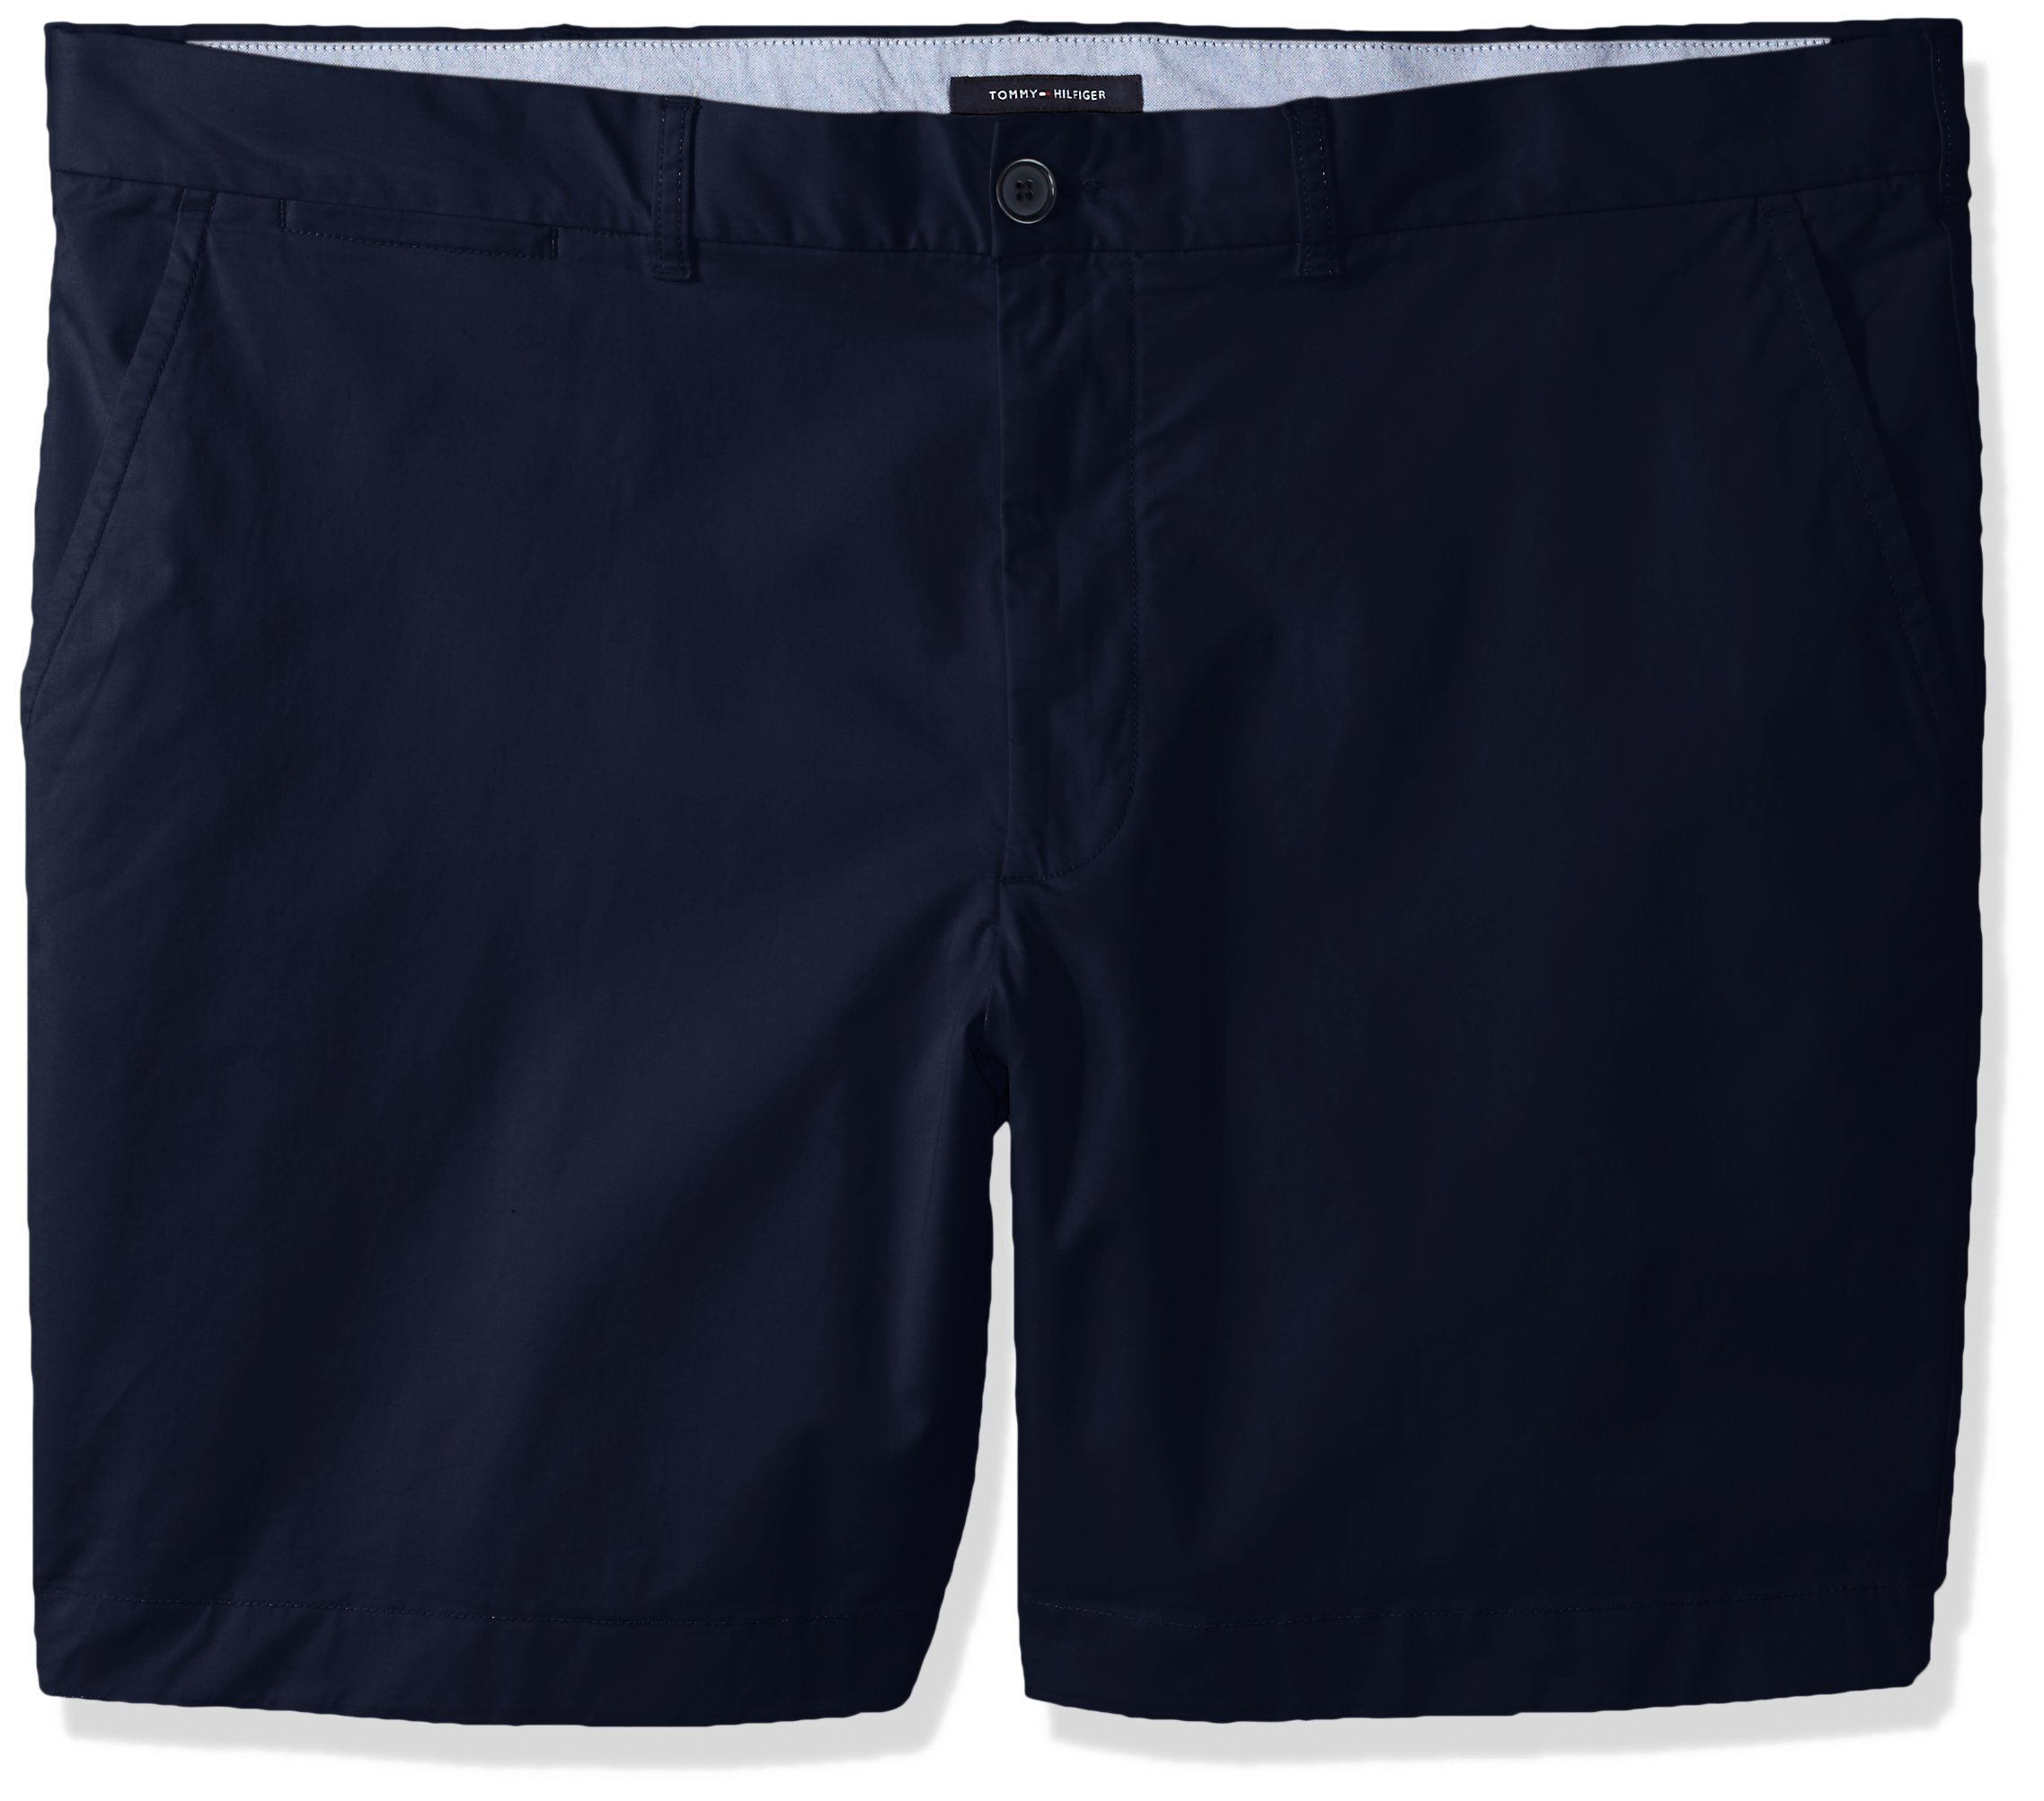 5a5879a8 Galleon - Tommy Hilfiger Men's Big And Tall Classic Fit Chino Shorts, Navy  Blazer, 2R, 46